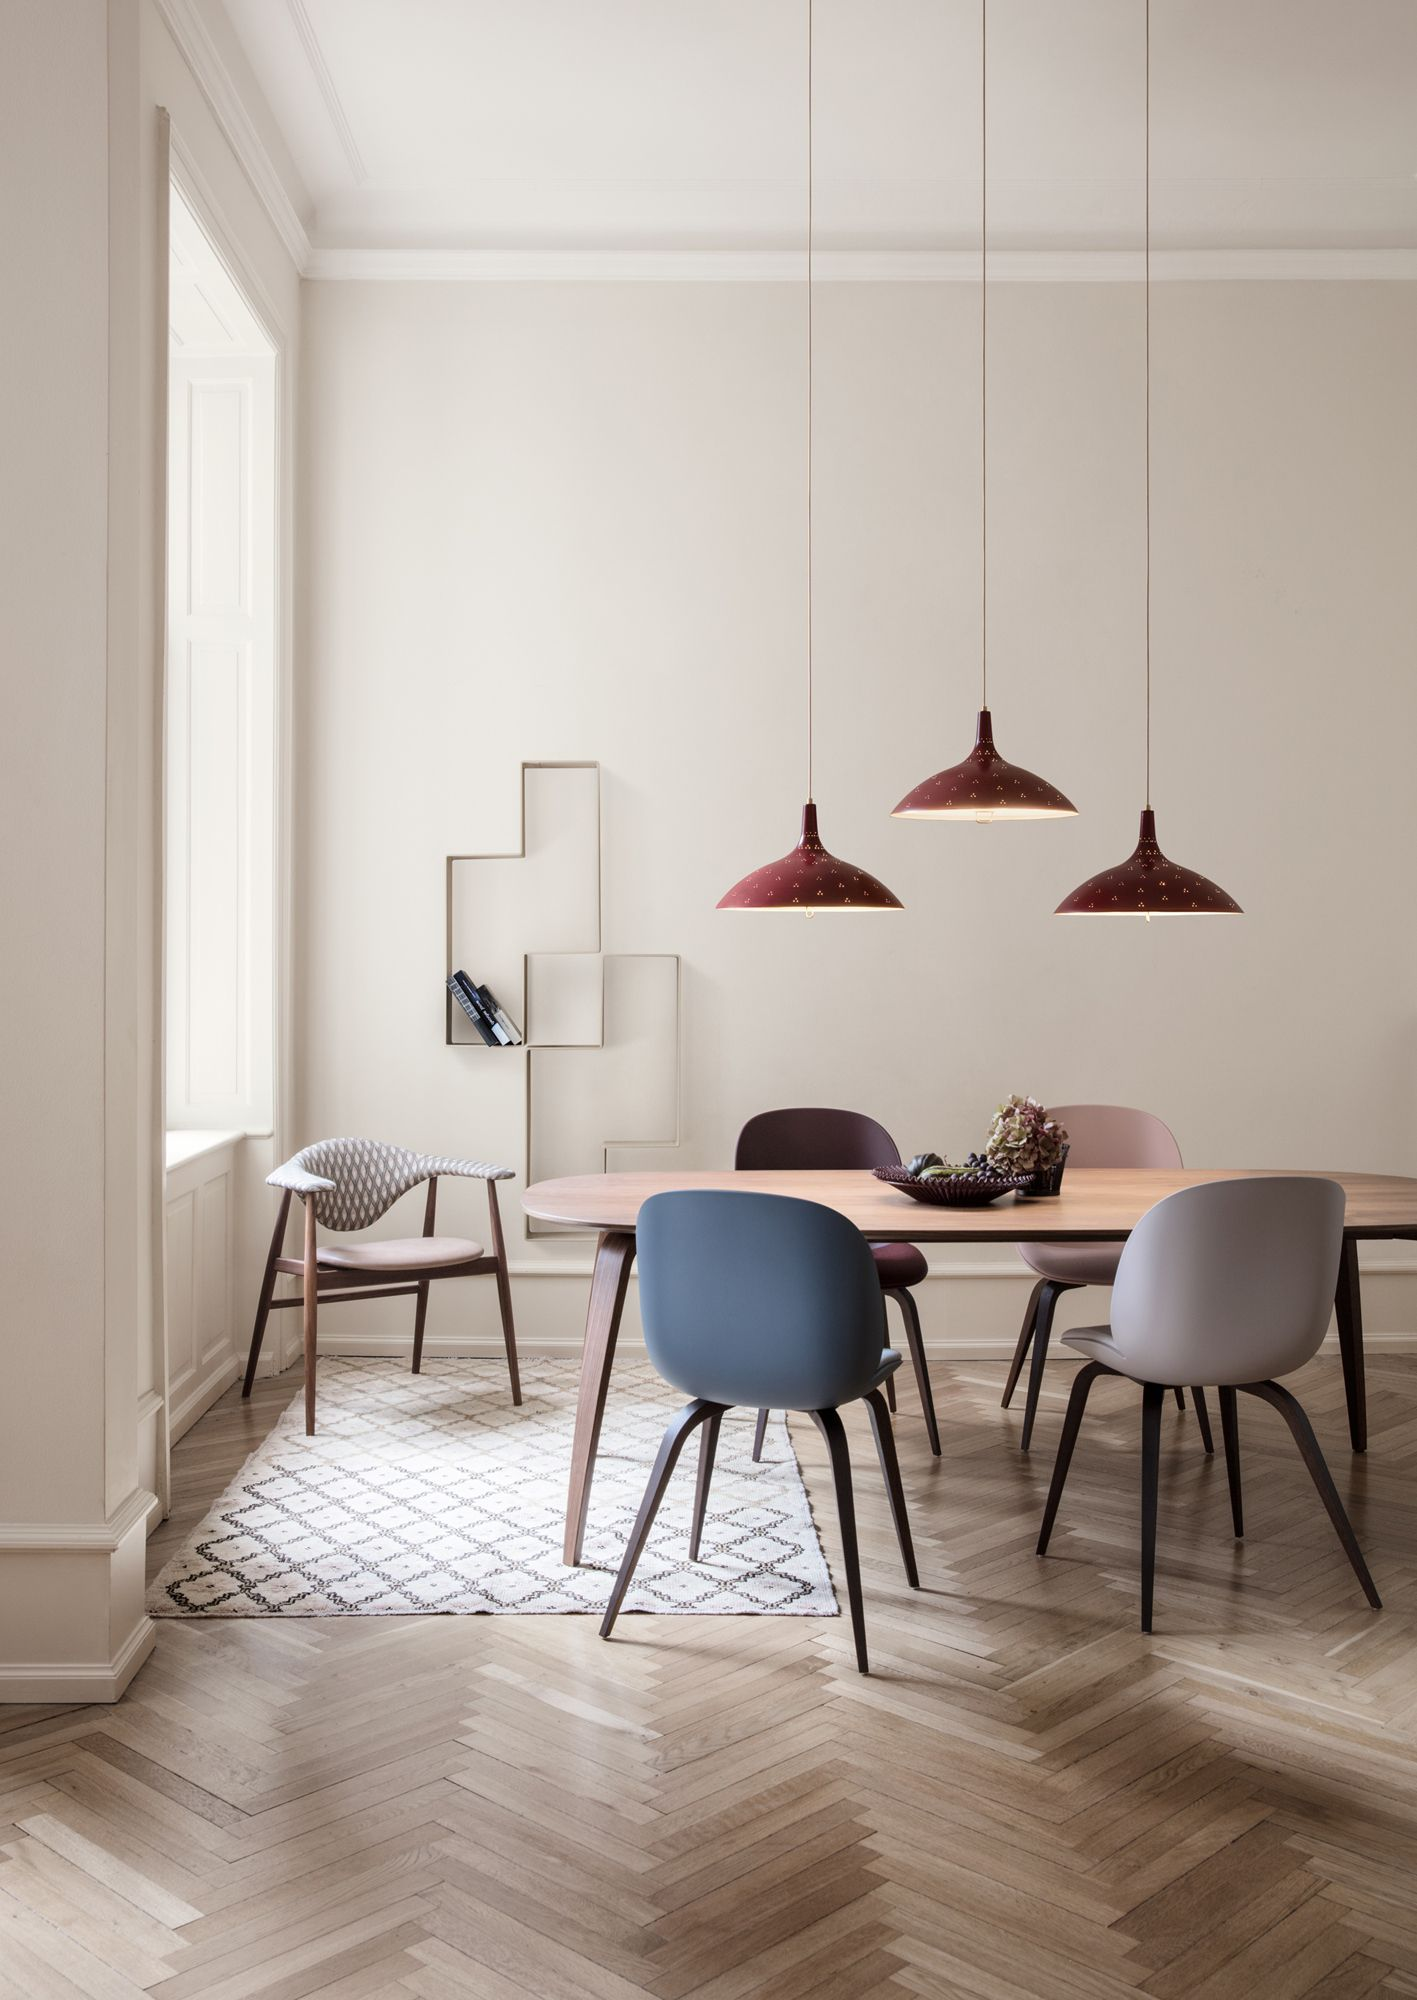 16 Dining Room Decorating Ideas with interiors